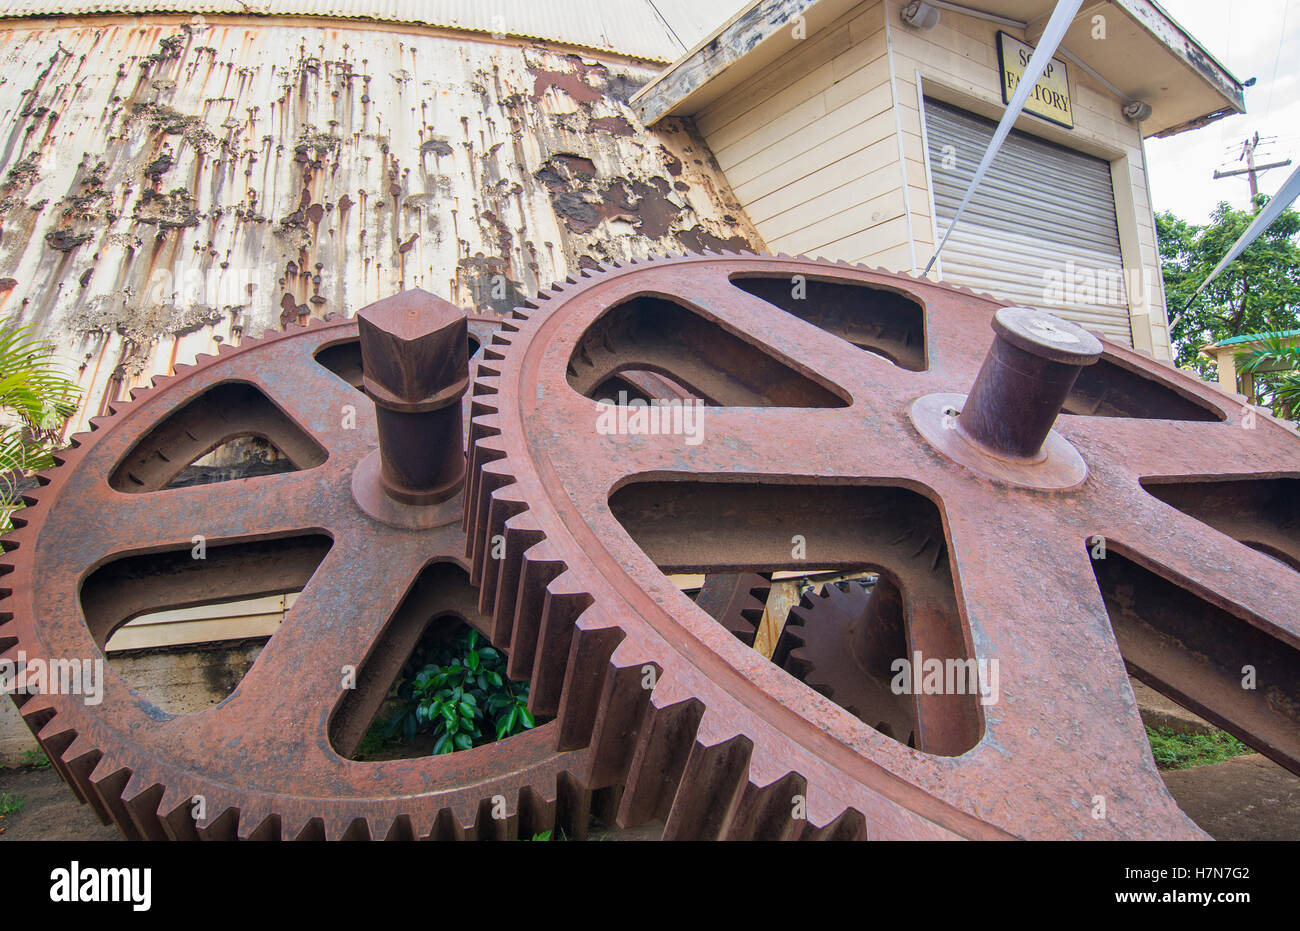 Waialua Hawaii Oahu old deserted sugar mill with giant gears deserted mill - Stock Image